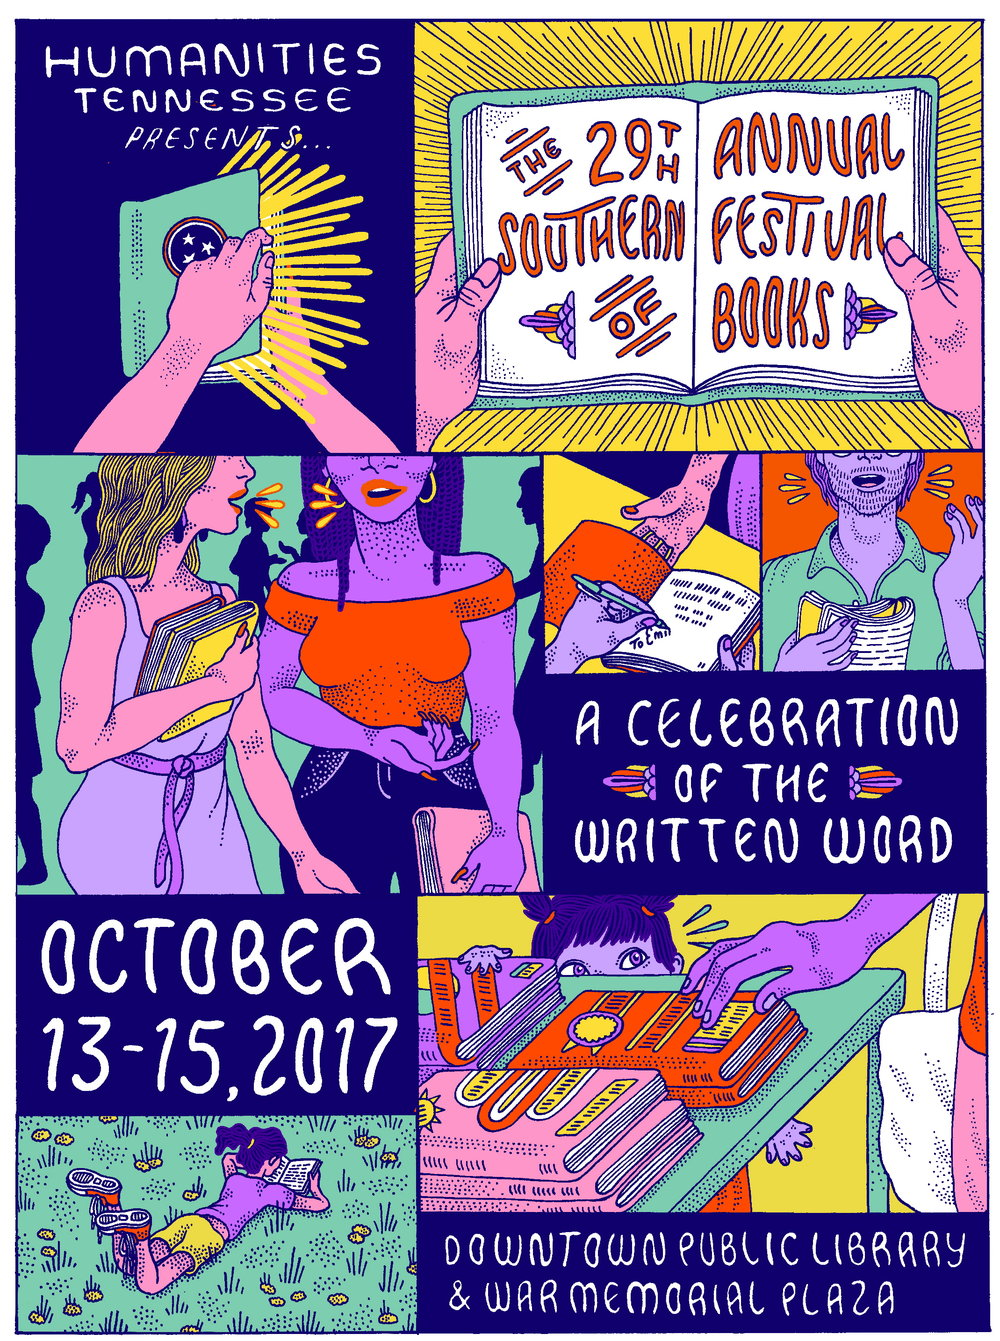 Client:  Humanities Tennessee   Poster for the organization's 'Southern Festival of Books' 2017